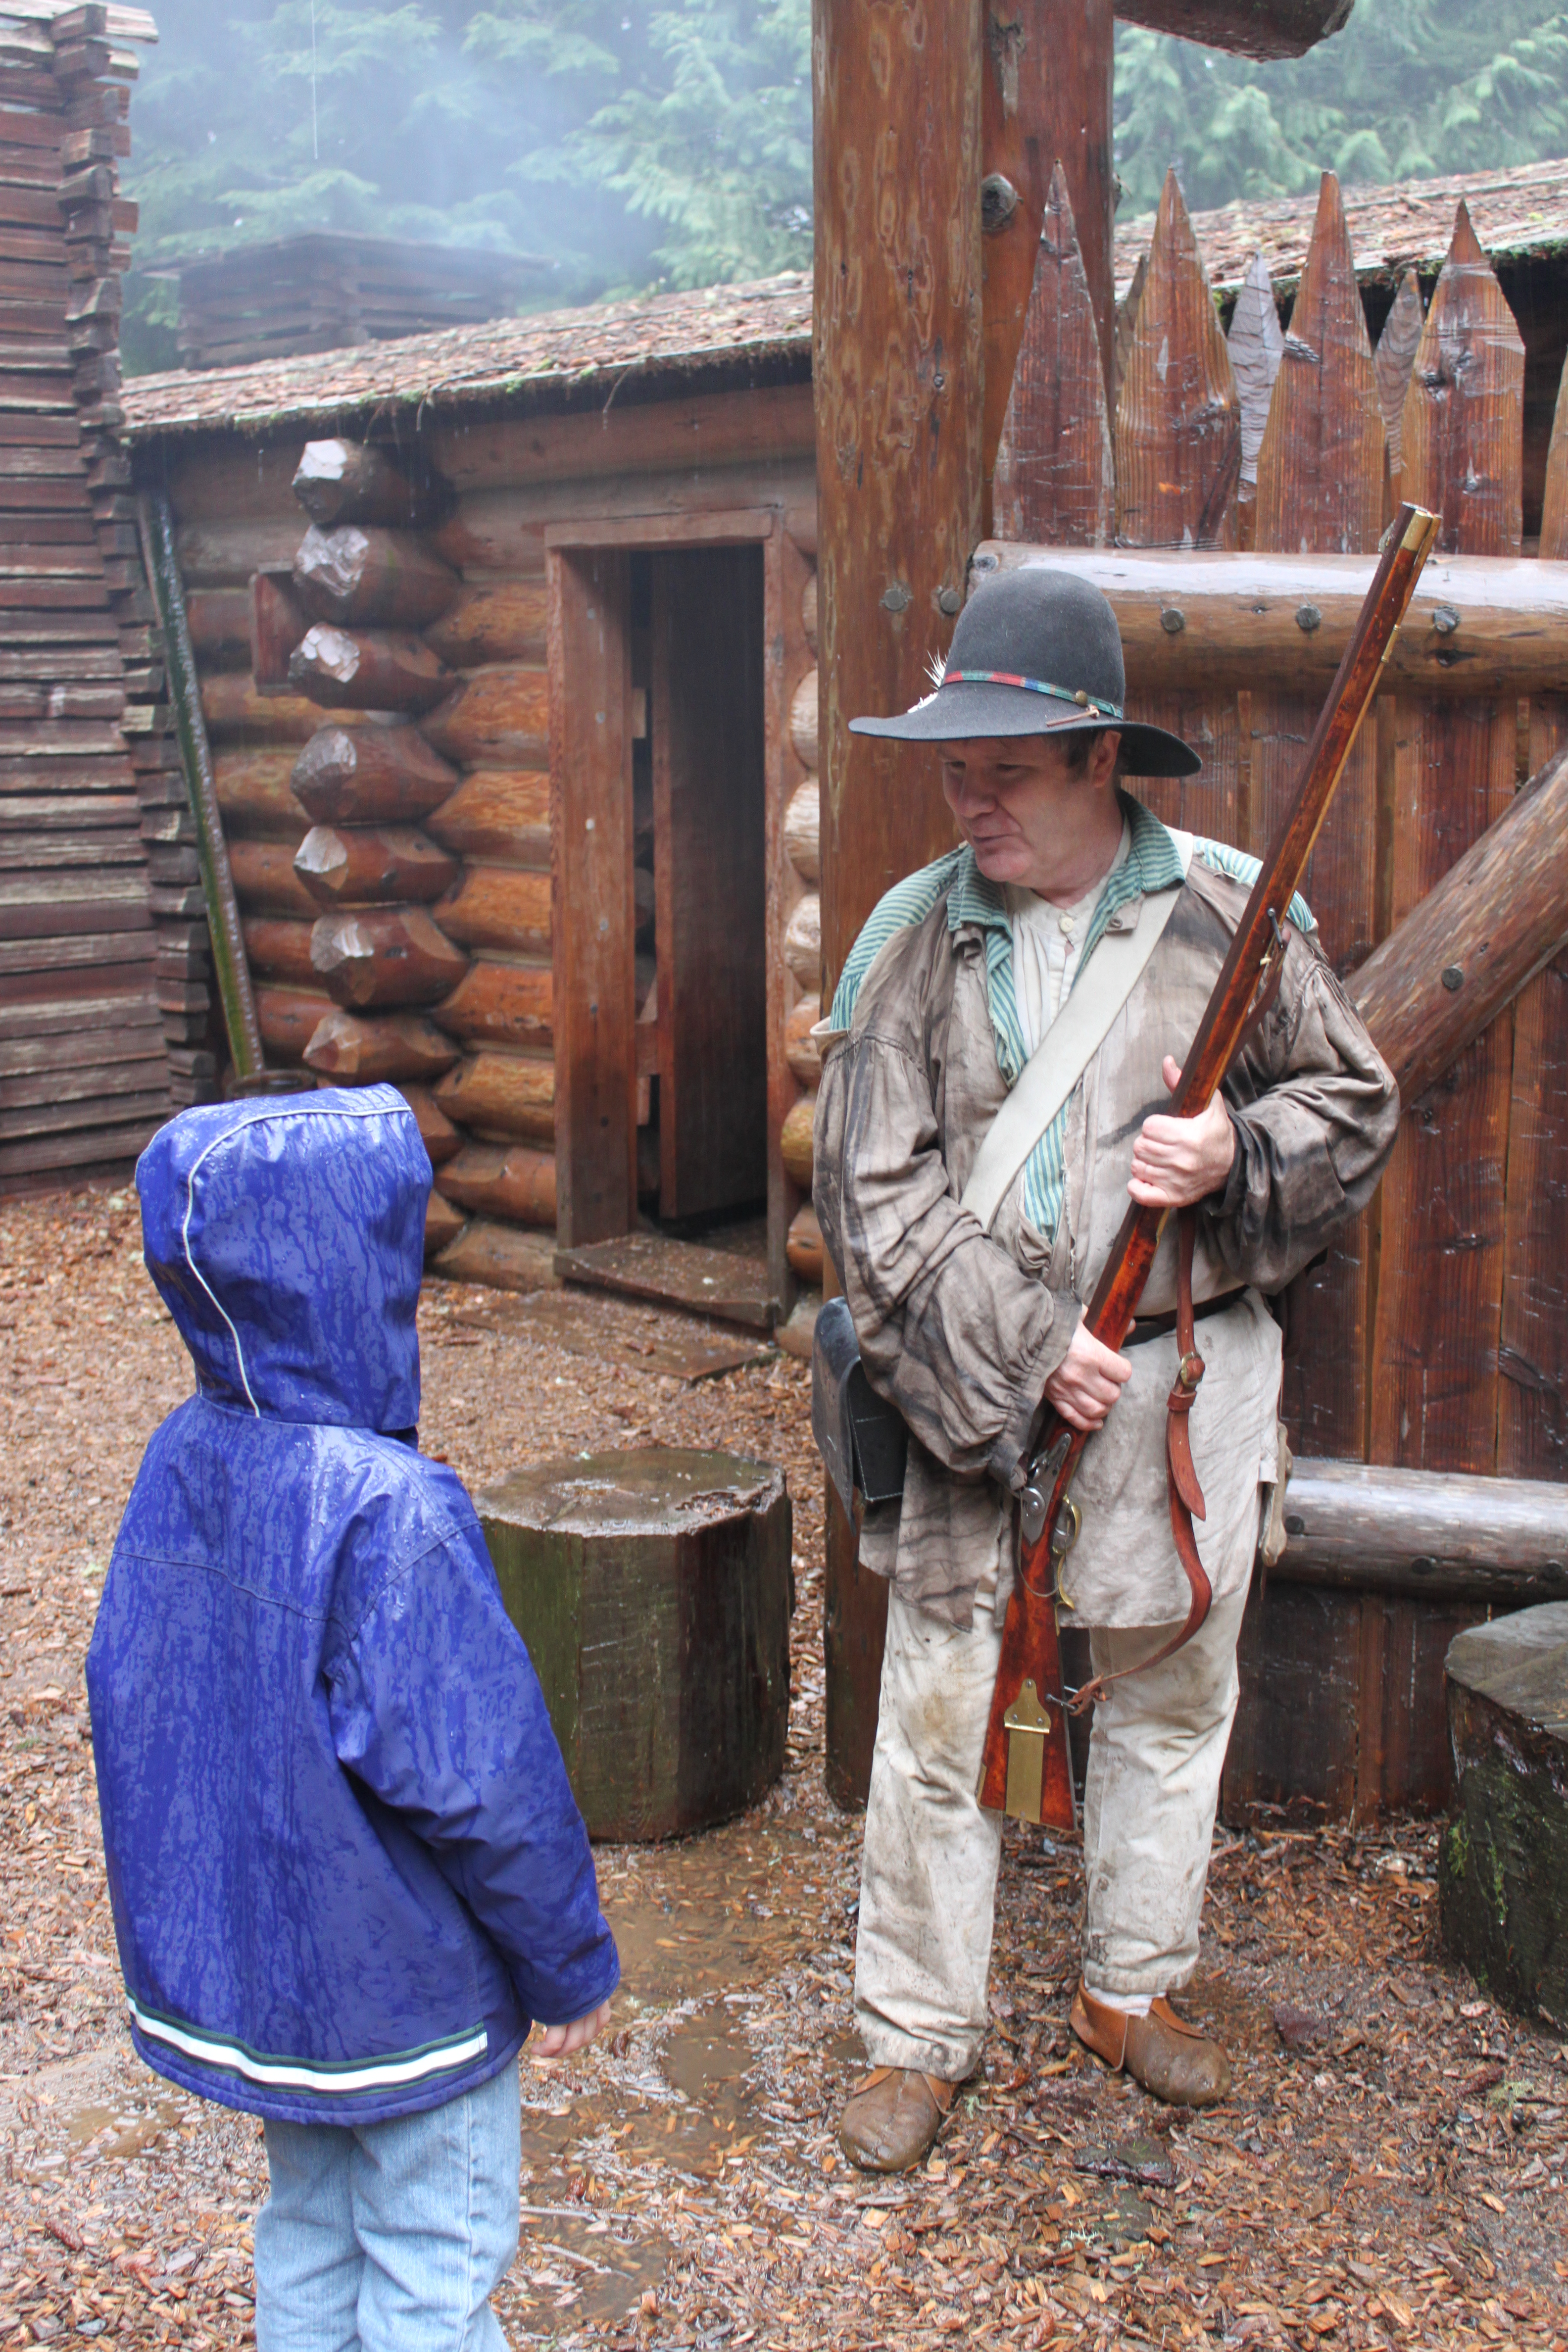 A ranger in costume talks to a child at the fort.